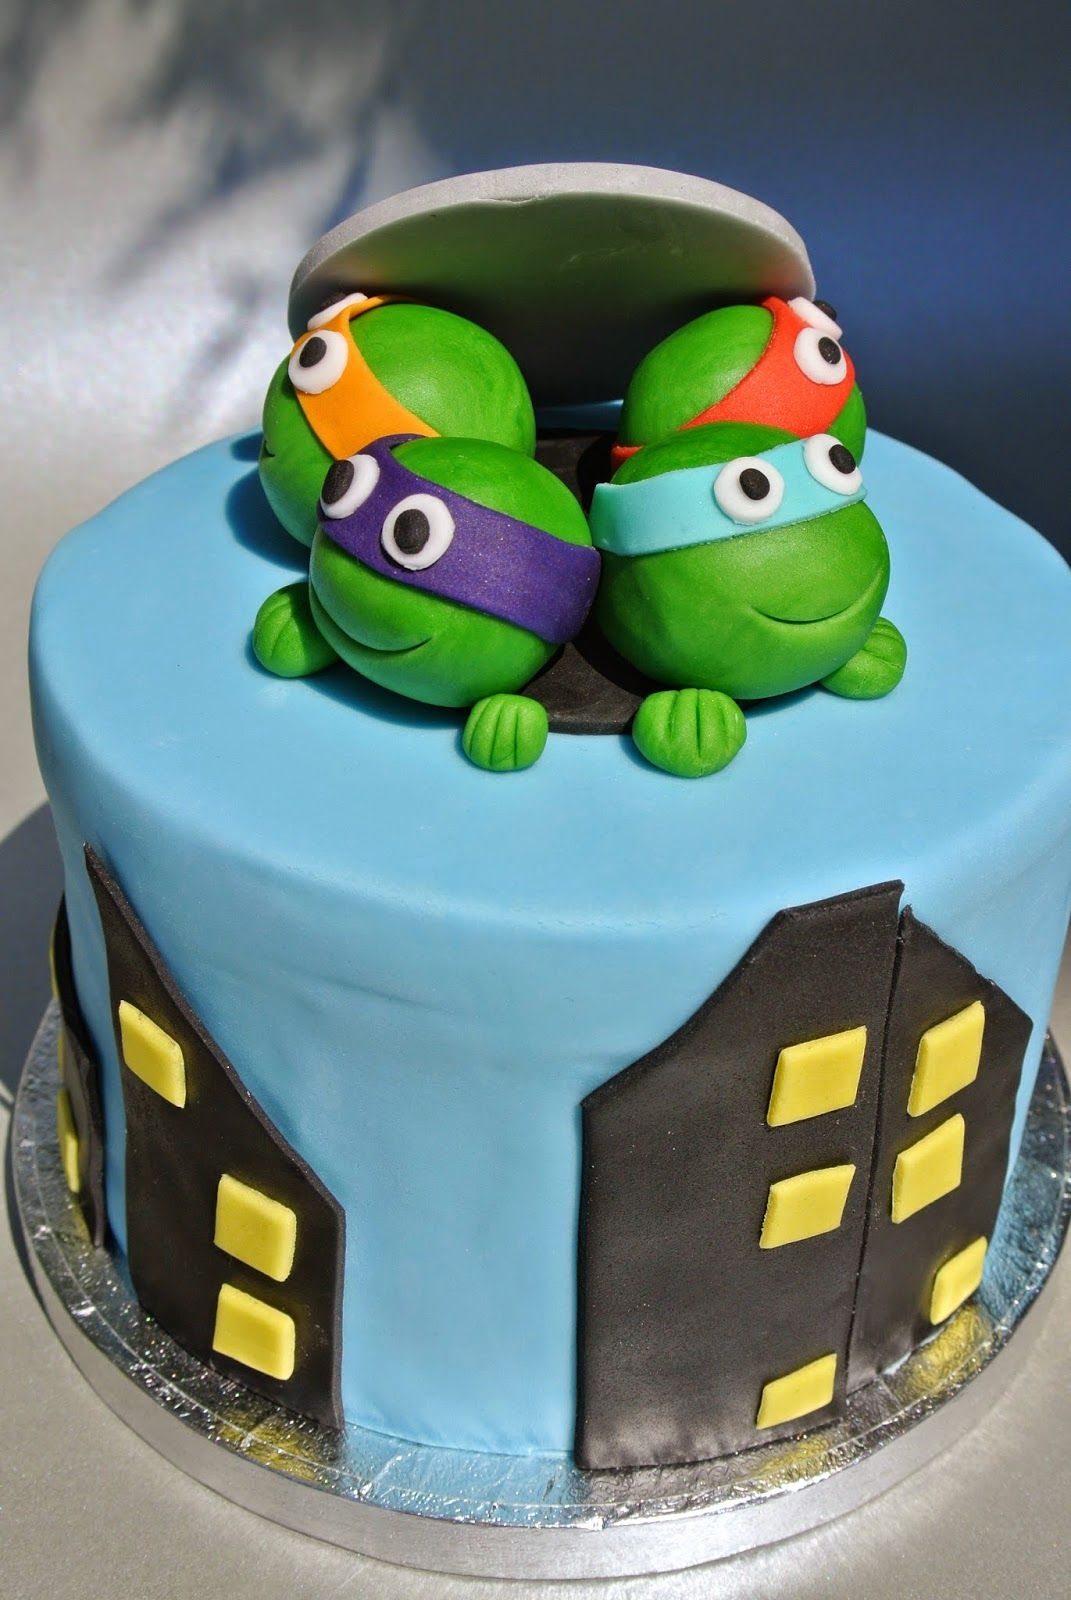 ninja turtles turtles cake ninja turtles cake torte. Black Bedroom Furniture Sets. Home Design Ideas